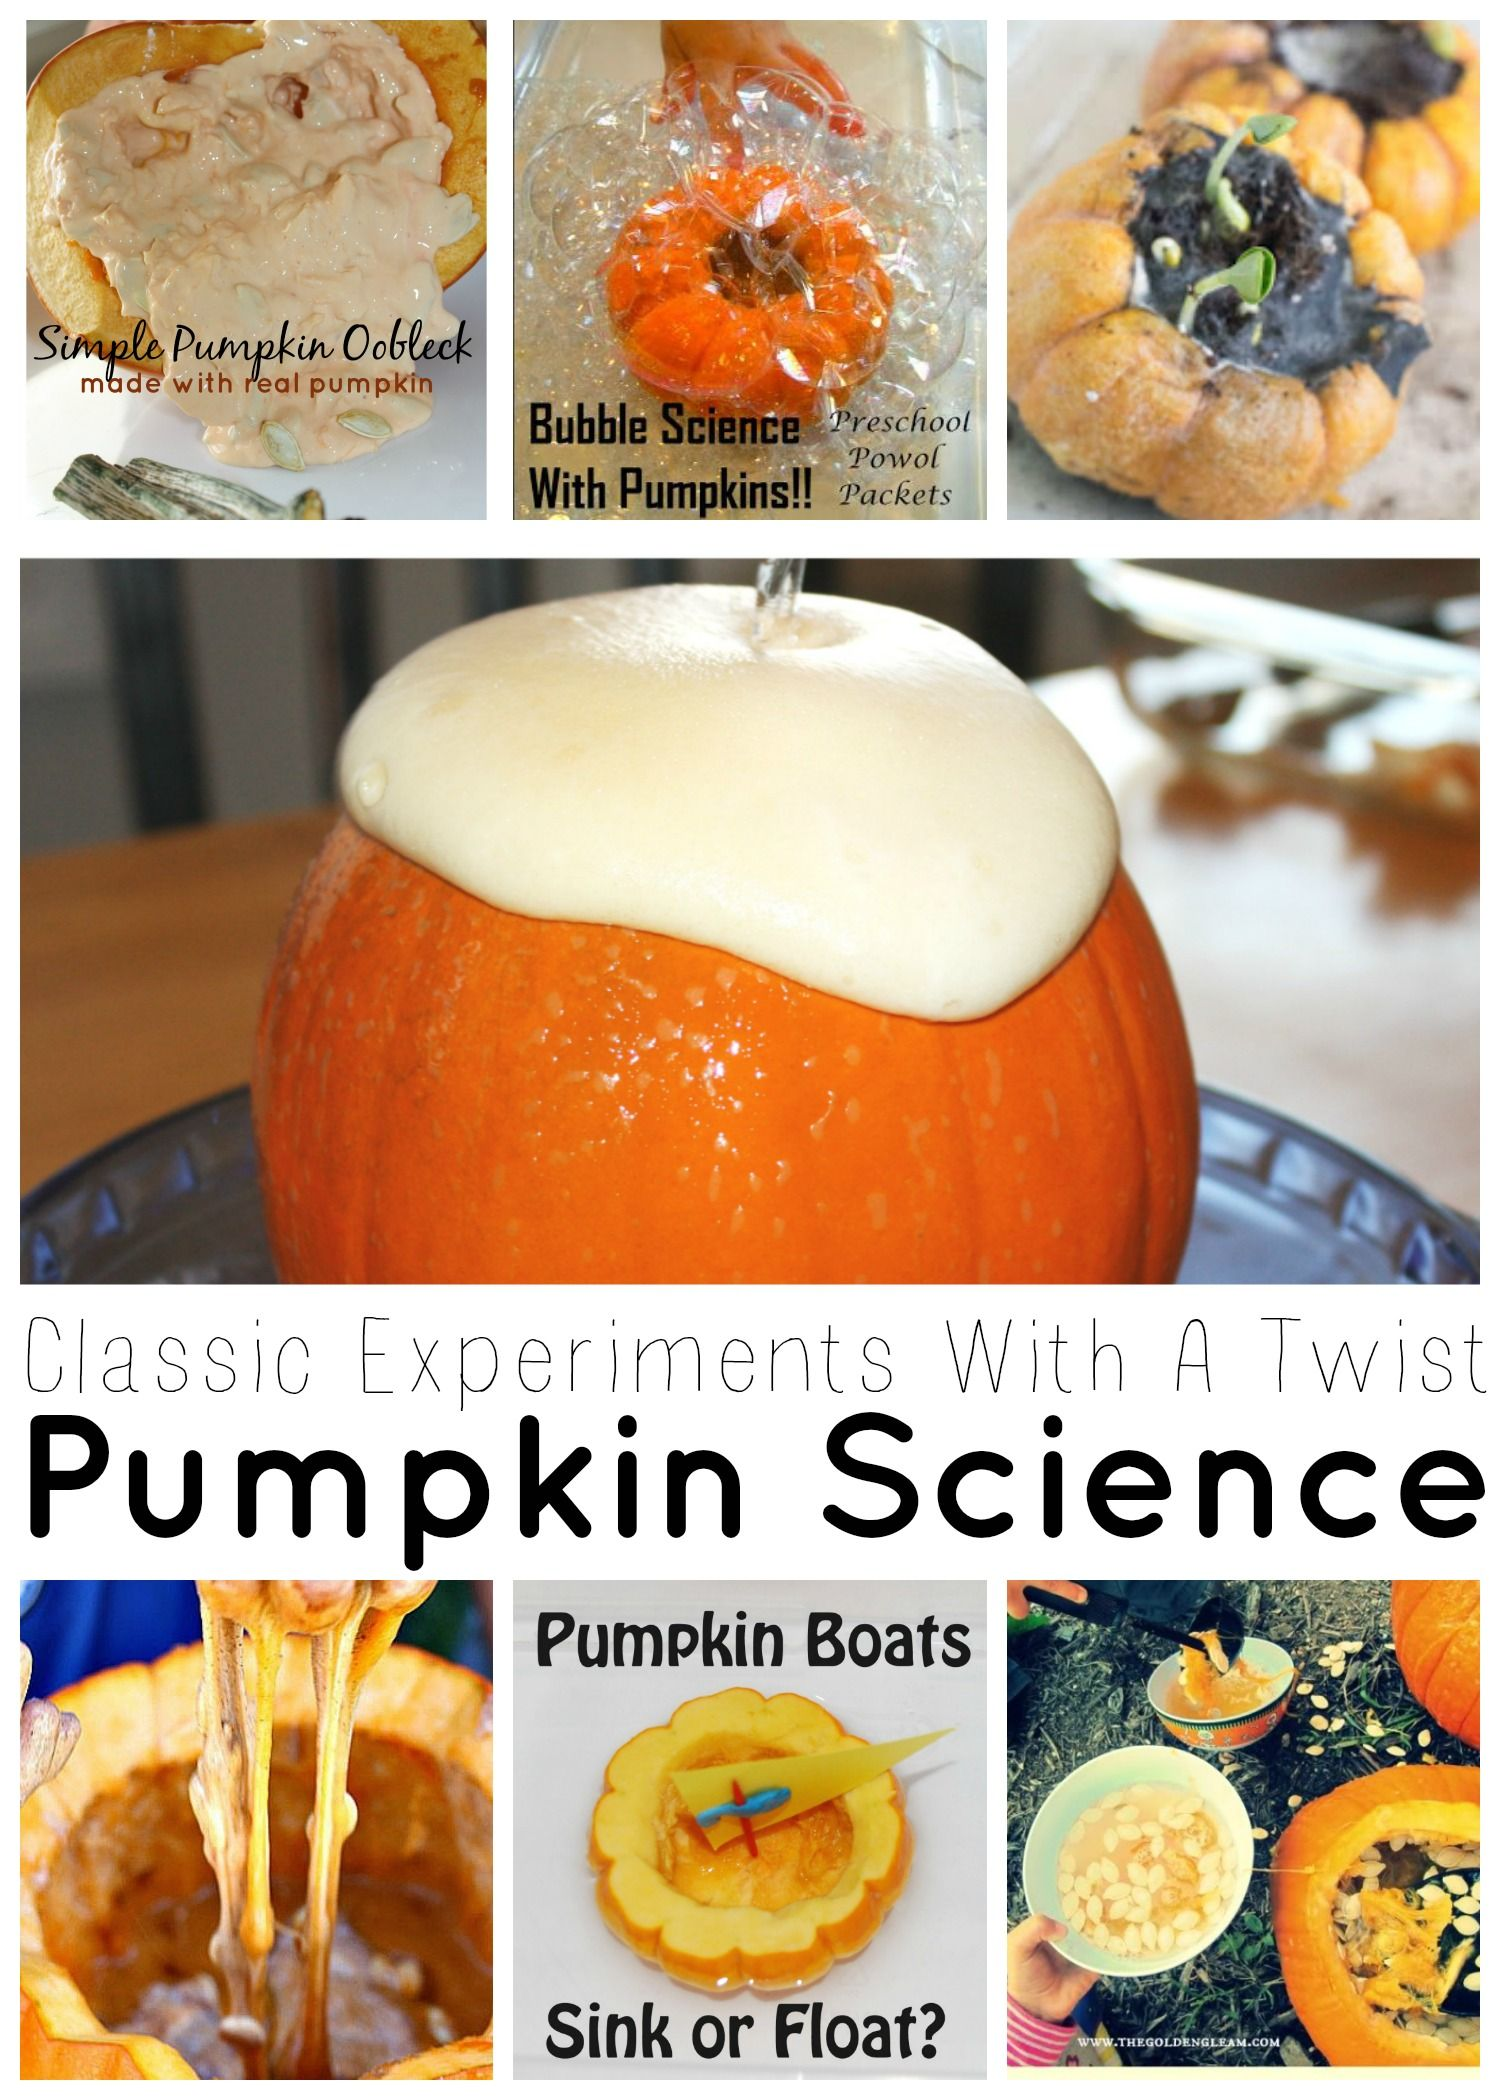 Pumpkin Science Experiments And Activities Classics With